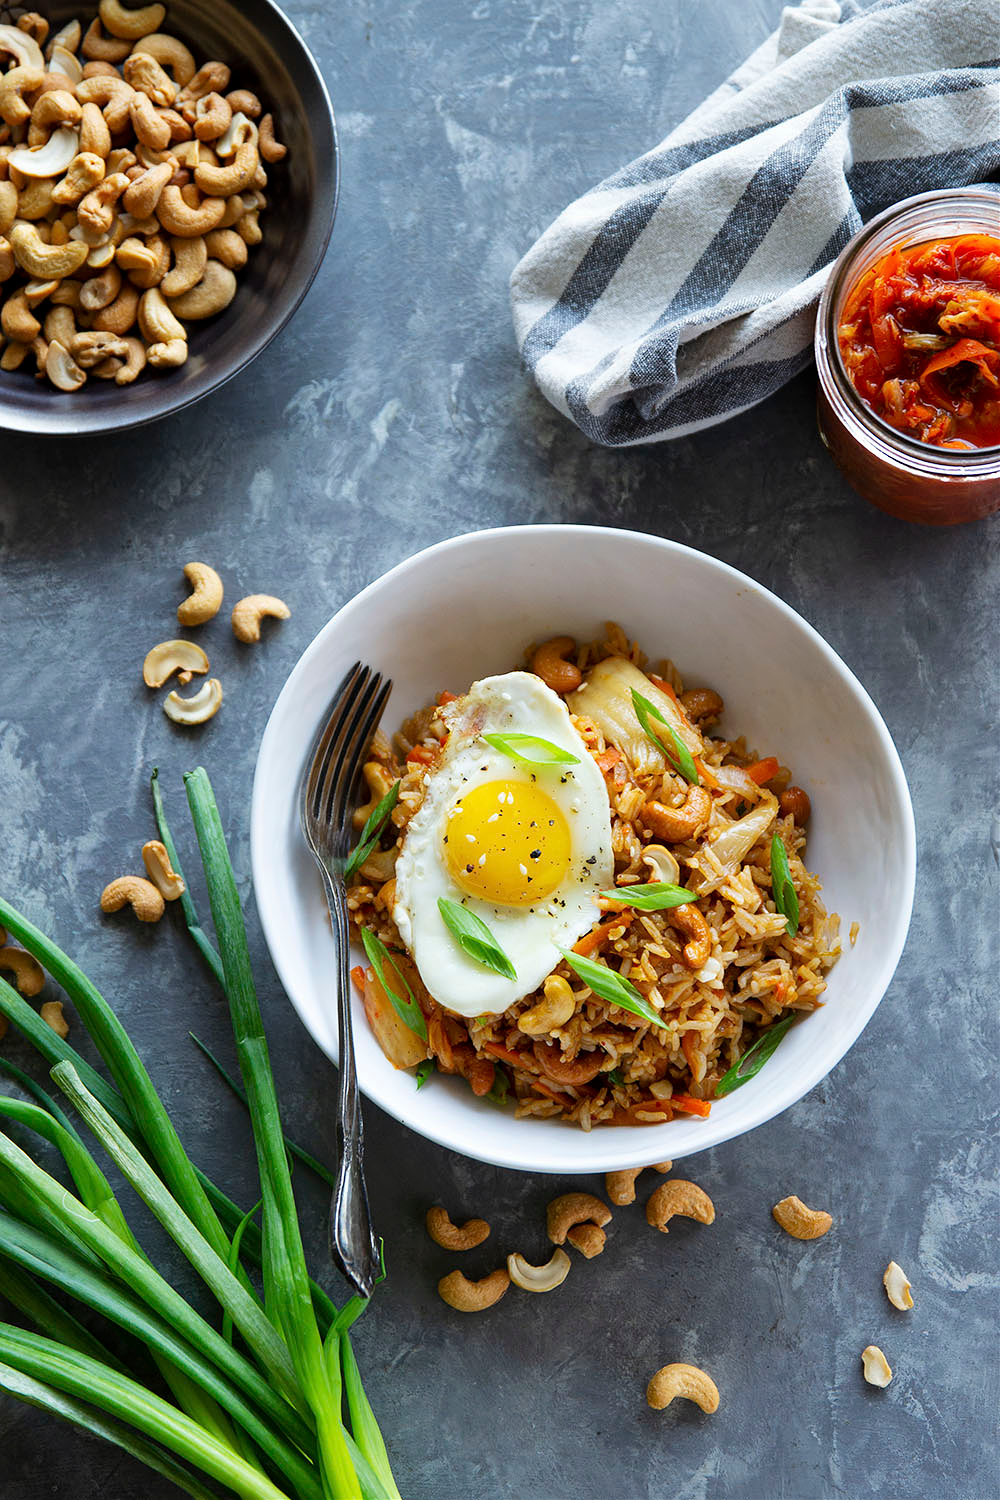 Flavorful kimchi and crunchy cashews take this kimchi cashew fried rice to the next level! Made easily in minutes with basic pantry ingredients and so much better than any takeout.